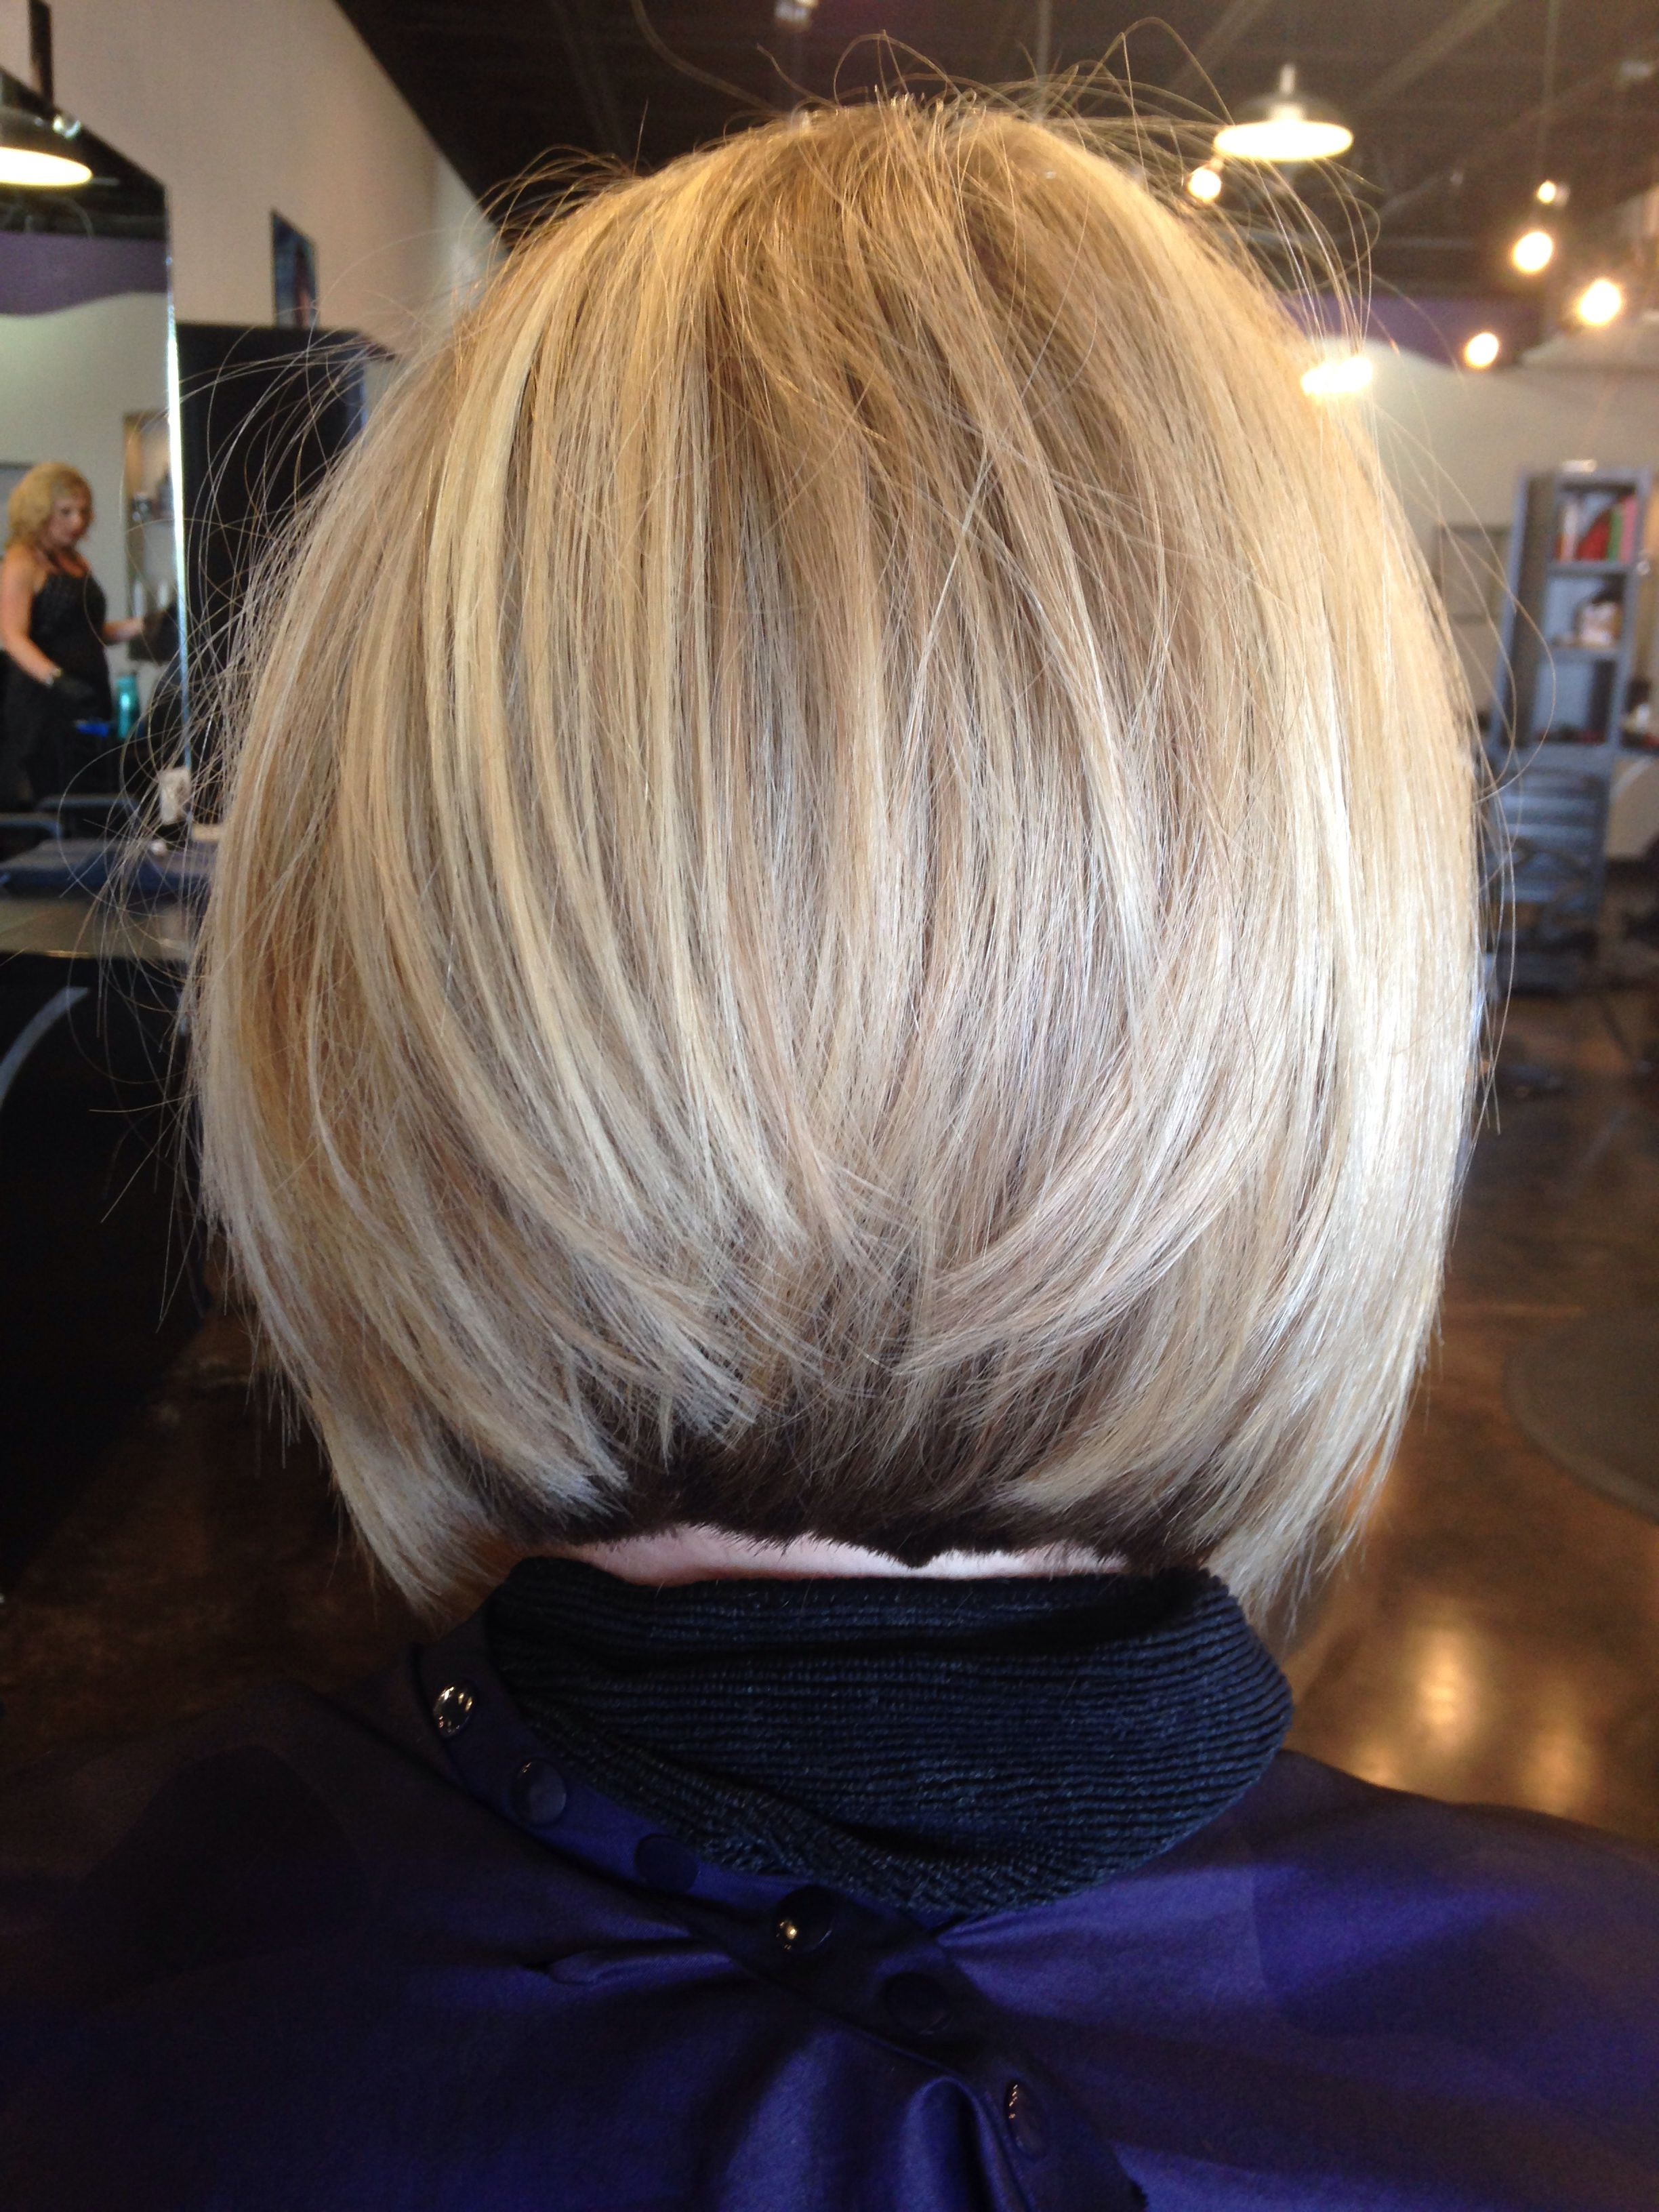 Beige Blonde Stacked Bob | Pin It Like 2 Image | I Love My Hair In With Regard To Short Blonde Inverted Bob Haircuts (View 2 of 20)